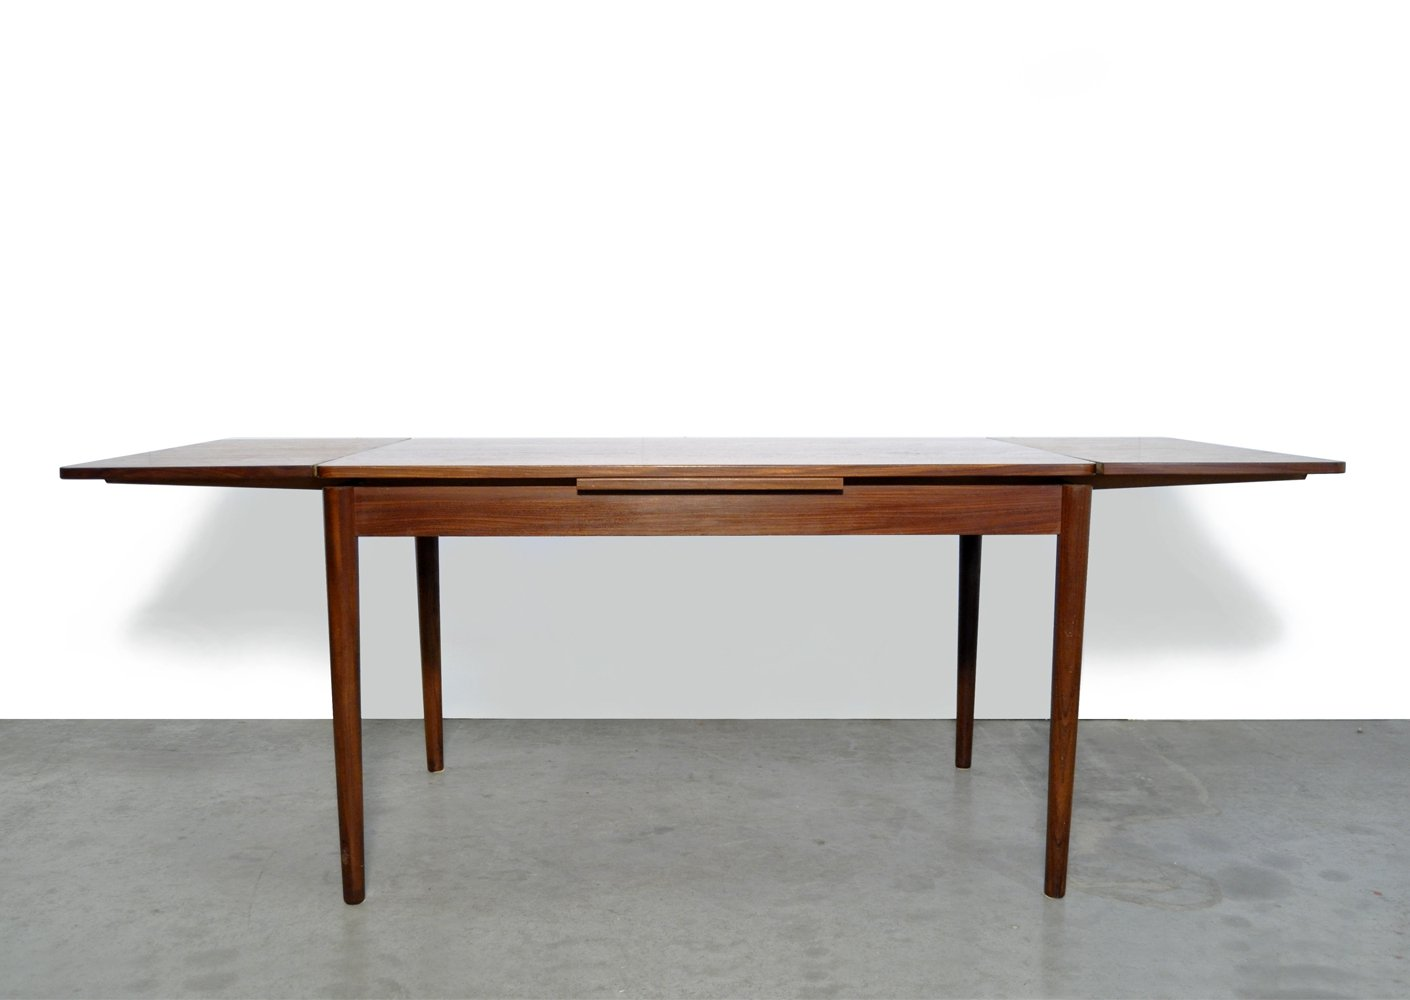 Vintage extendable teak dining table by Cees Braakman for Pastoe, Netherlands 1960s